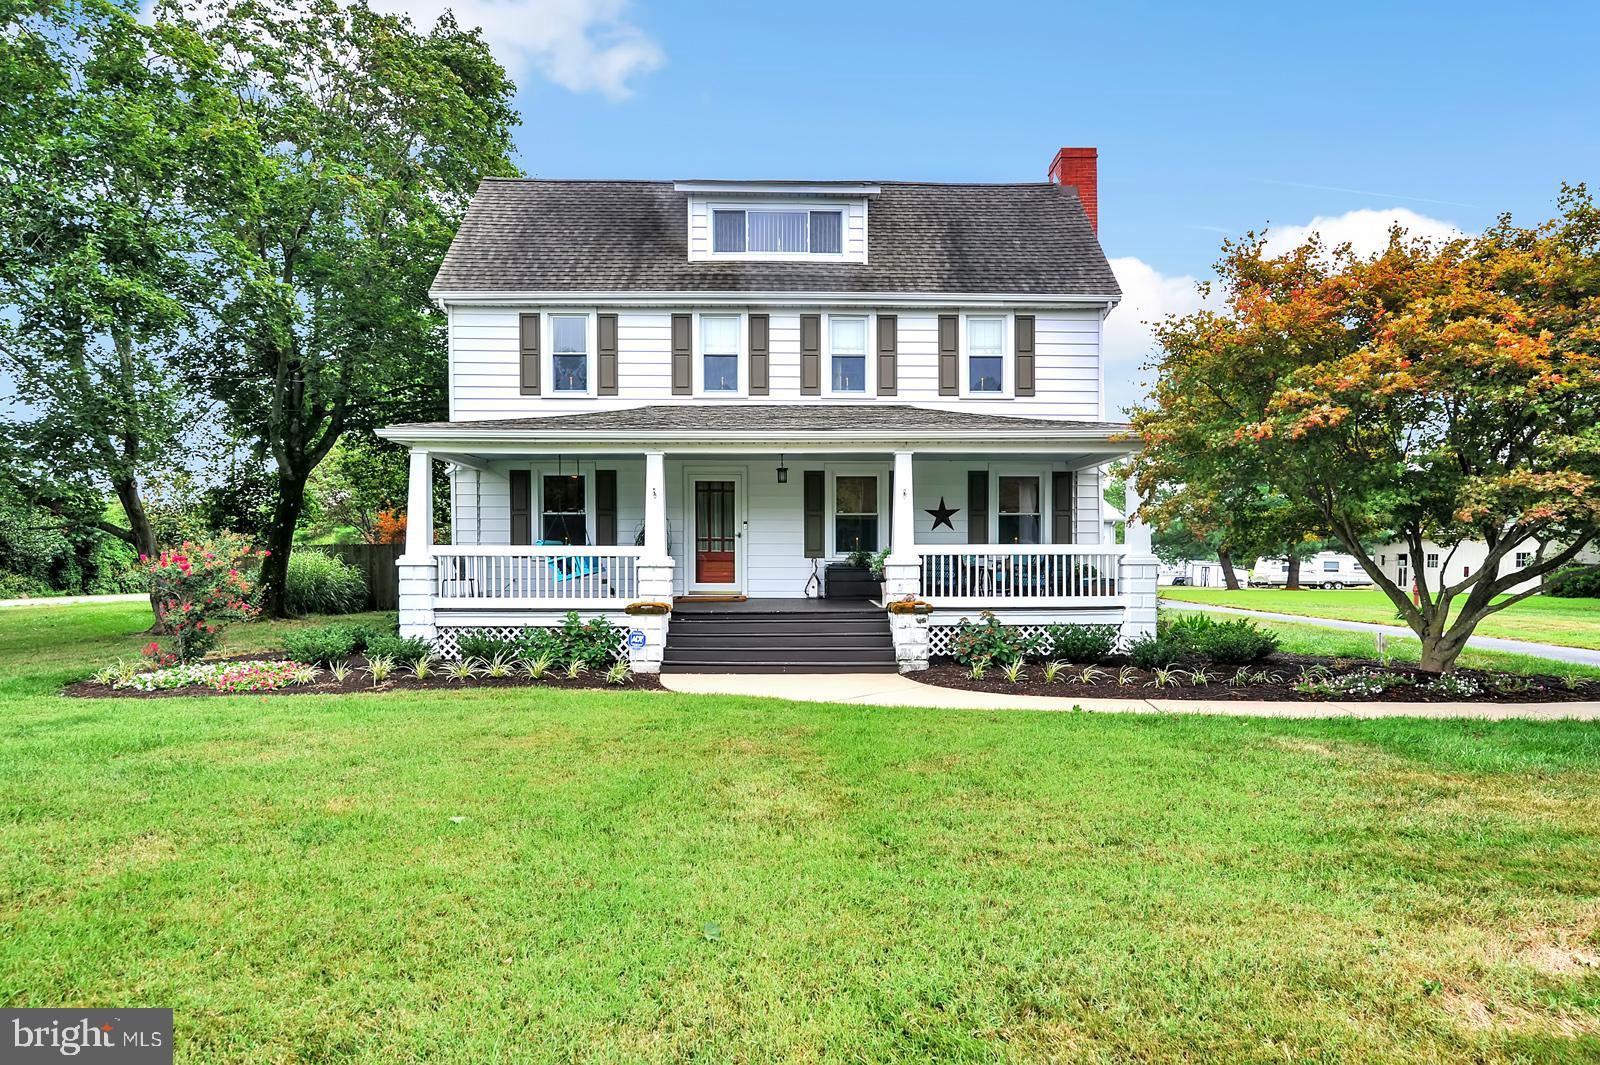 This beautiful American foursquare historic home is the absolute picture of perfection. The utmost care has been taken with this home, and pride of ownership shines throughout.  Step up onto the gorgeous 35' x 9' front porch and imagine mornings gazing out across the fields, or evenings rocking away, admiring the newly landscaped lawn.  Upon entry, you'll be greeted with recently updated carpets, beautiful historic colors throughout, and original trim, all specially restored and replaced to its original location. The living room, complete with original fireplace, boasts original hardwood flooring, sanded and refinished for a brand new look, and original french doors leading into the formal dining area. The gourmet kitchen, renovated just a few years ago, boasts hard-surface countertops, custom backsplash, newer appliances, and a peninsula with an informal seating area for all of your entertainment needs. The original canning kitchen allows for even more seating area, should it be needed, plus has been renovated into a main floor laundry area complete with built in utility closet/storage cabinets. Rounding out the main floor is the first of four bedrooms, currently being used as an office, which connects to the main floor, fully renovated bathroom, but would make an ideal bedroom for anyone in need of first floor living! Upstairs, you will find three overly spacious bedrooms, including the master connecting to the sewing room, which provides accessibility to the partially finished attic space, and another fully renovated bath with amazing custom-tile shower, modern flooring, custom wood vanity with solid surface countertop and dedicated makeup area, built-in wooden linen closet, and two skylights (crank opening!) to provide all of the natural lighting and air you could desire! Should you be in need of storage, there is a full, dry basement in addition to the attic space that was once used as living space, plus not one, but TWO outbuildings! The first, a 3-car garage,